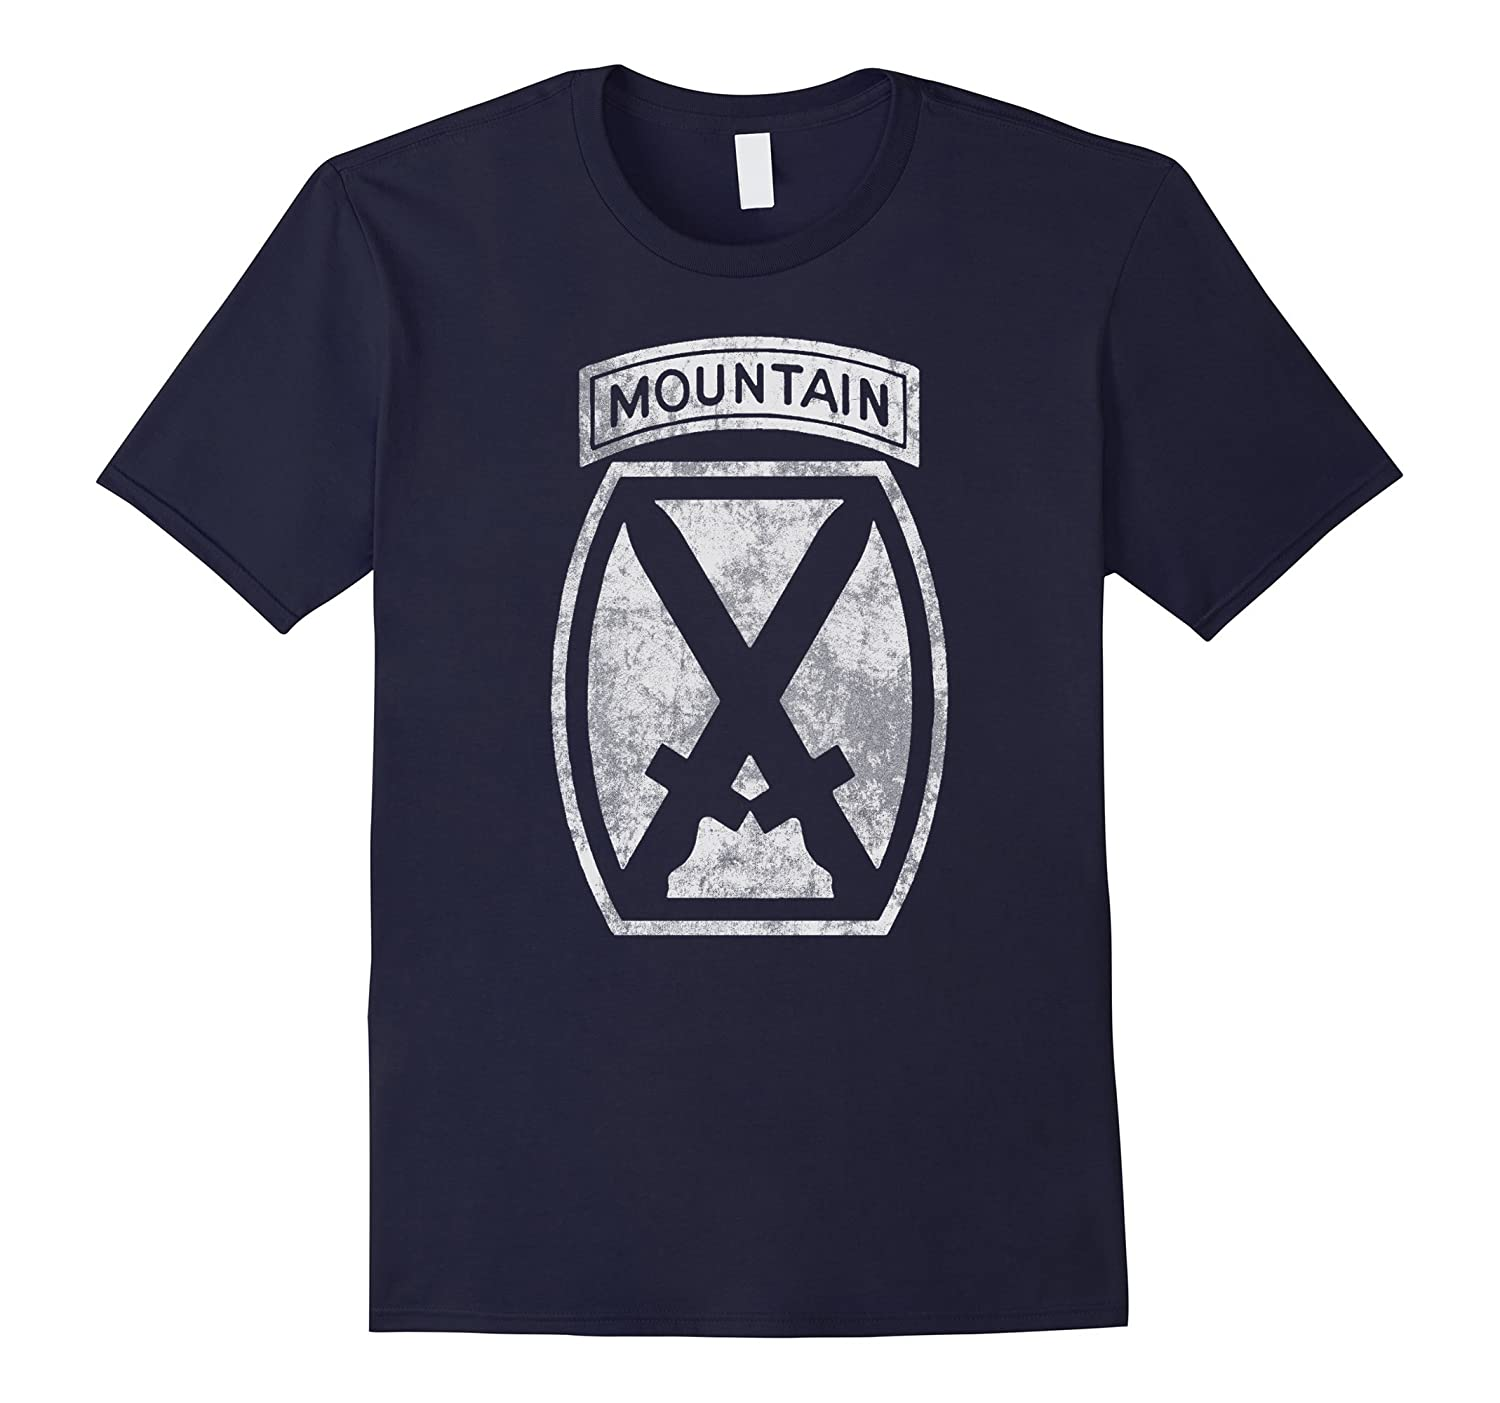 10th Mountain Division Veteran T Shirt - Men Women Kid-T-Shirt